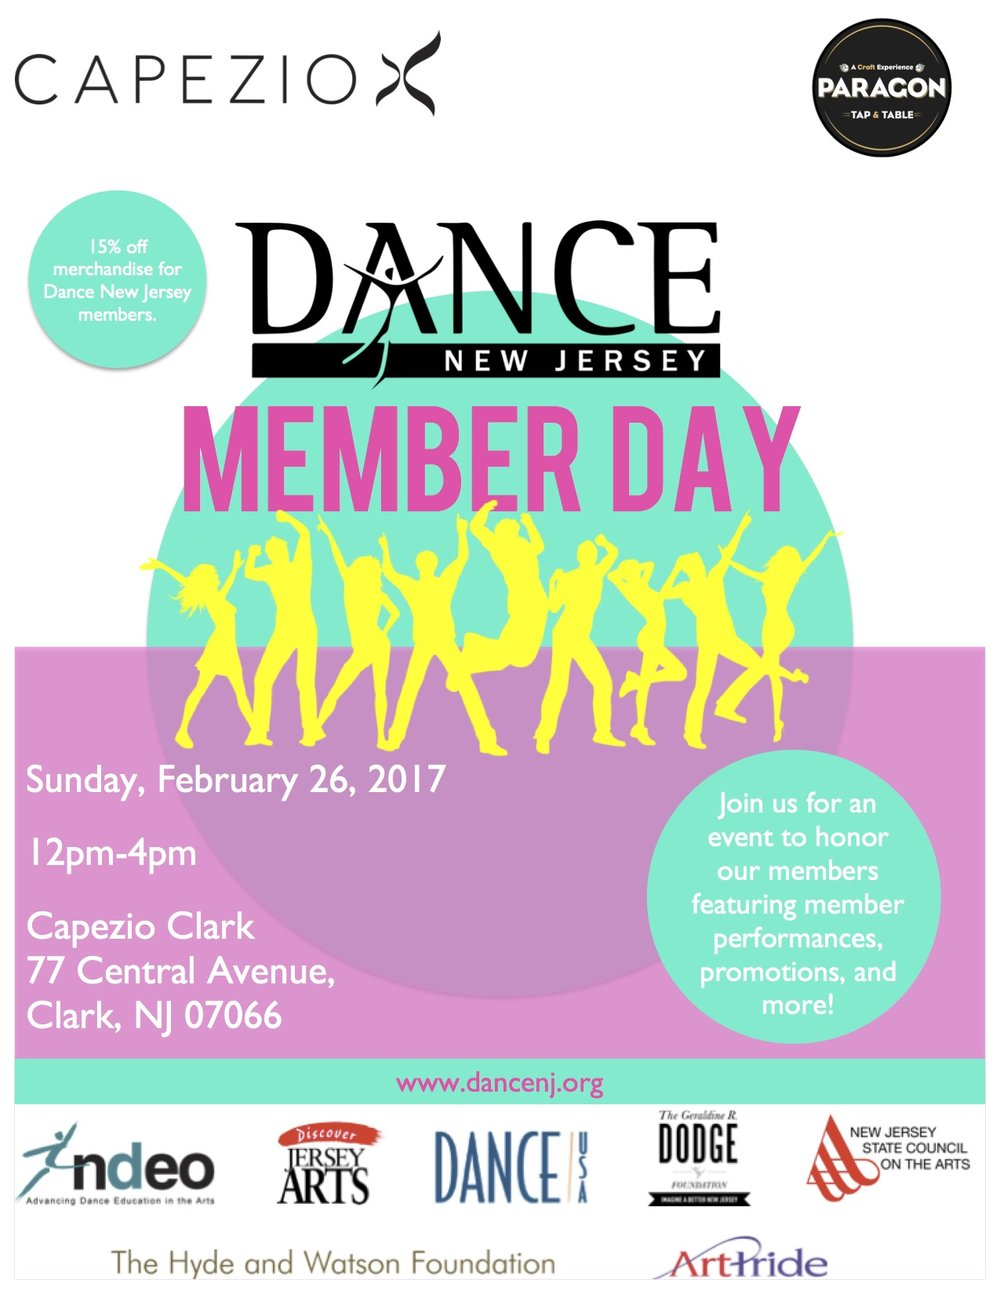 For questions, contact Administrative Assistant Stephanie Rankin at contact.dancenj@gmail.com. Place in the subject line: DanceNJ Member Day.